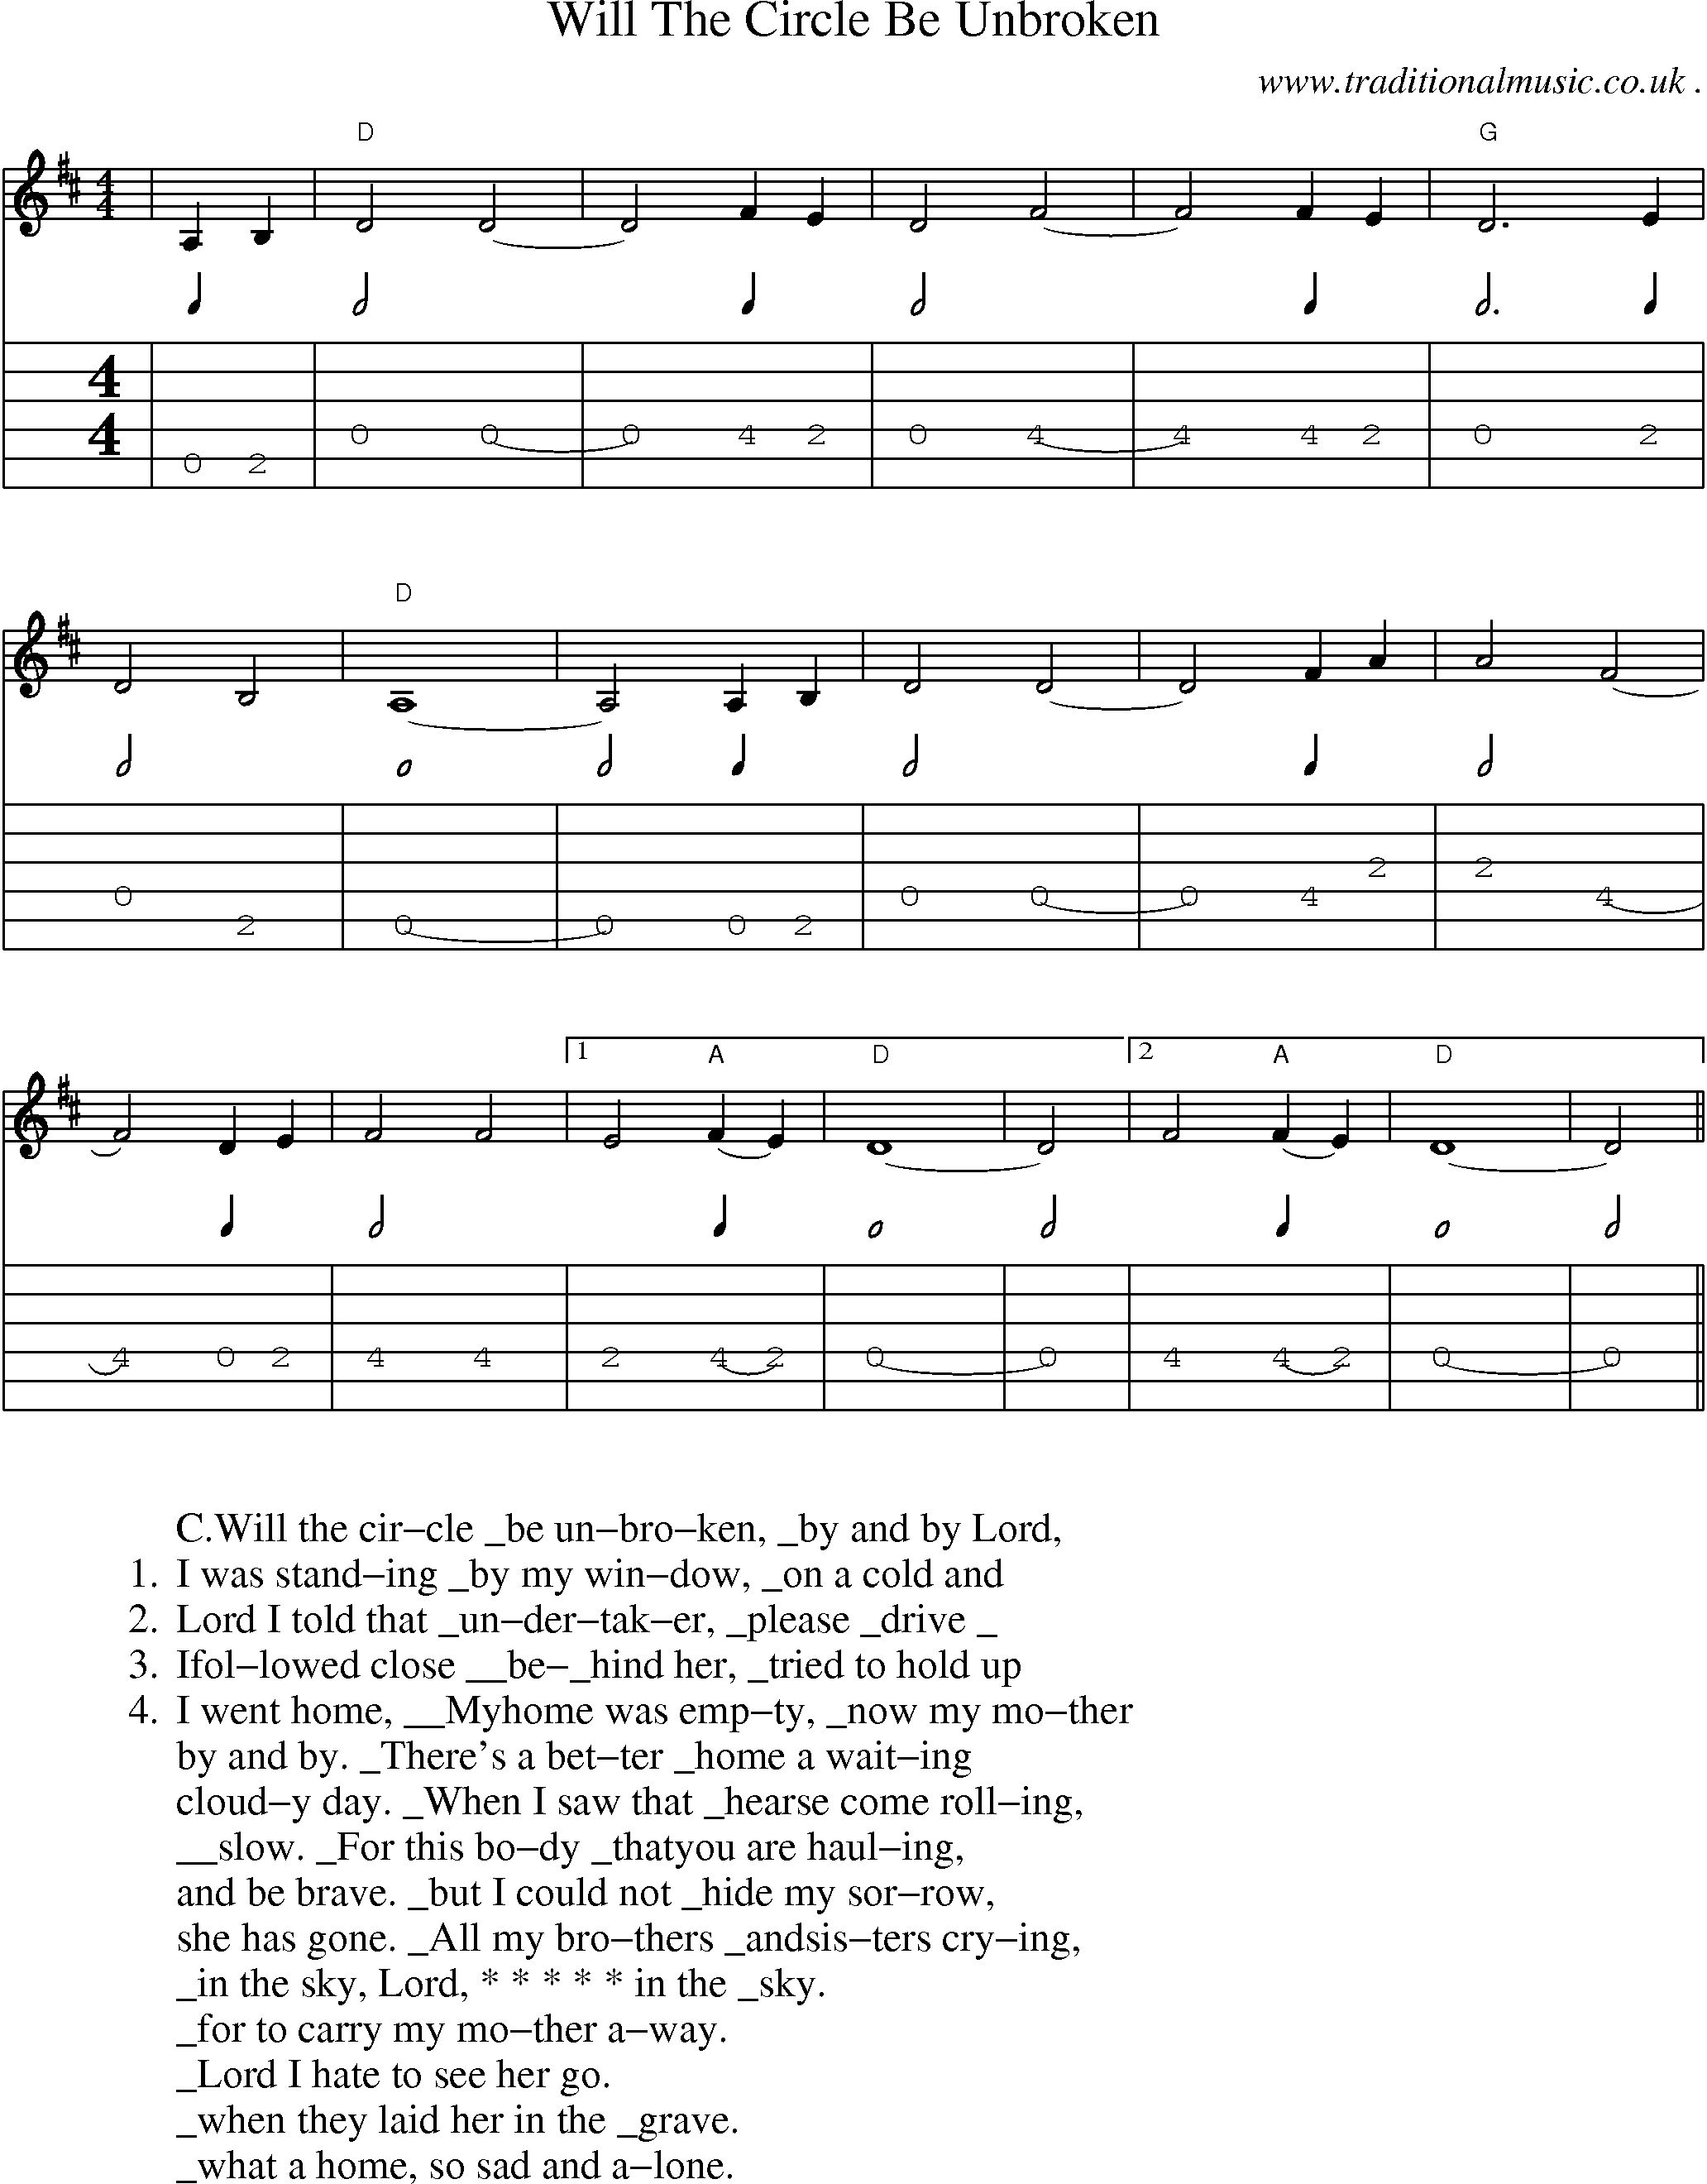 American Old Time Music Scores And Tabs For Guitar Will The